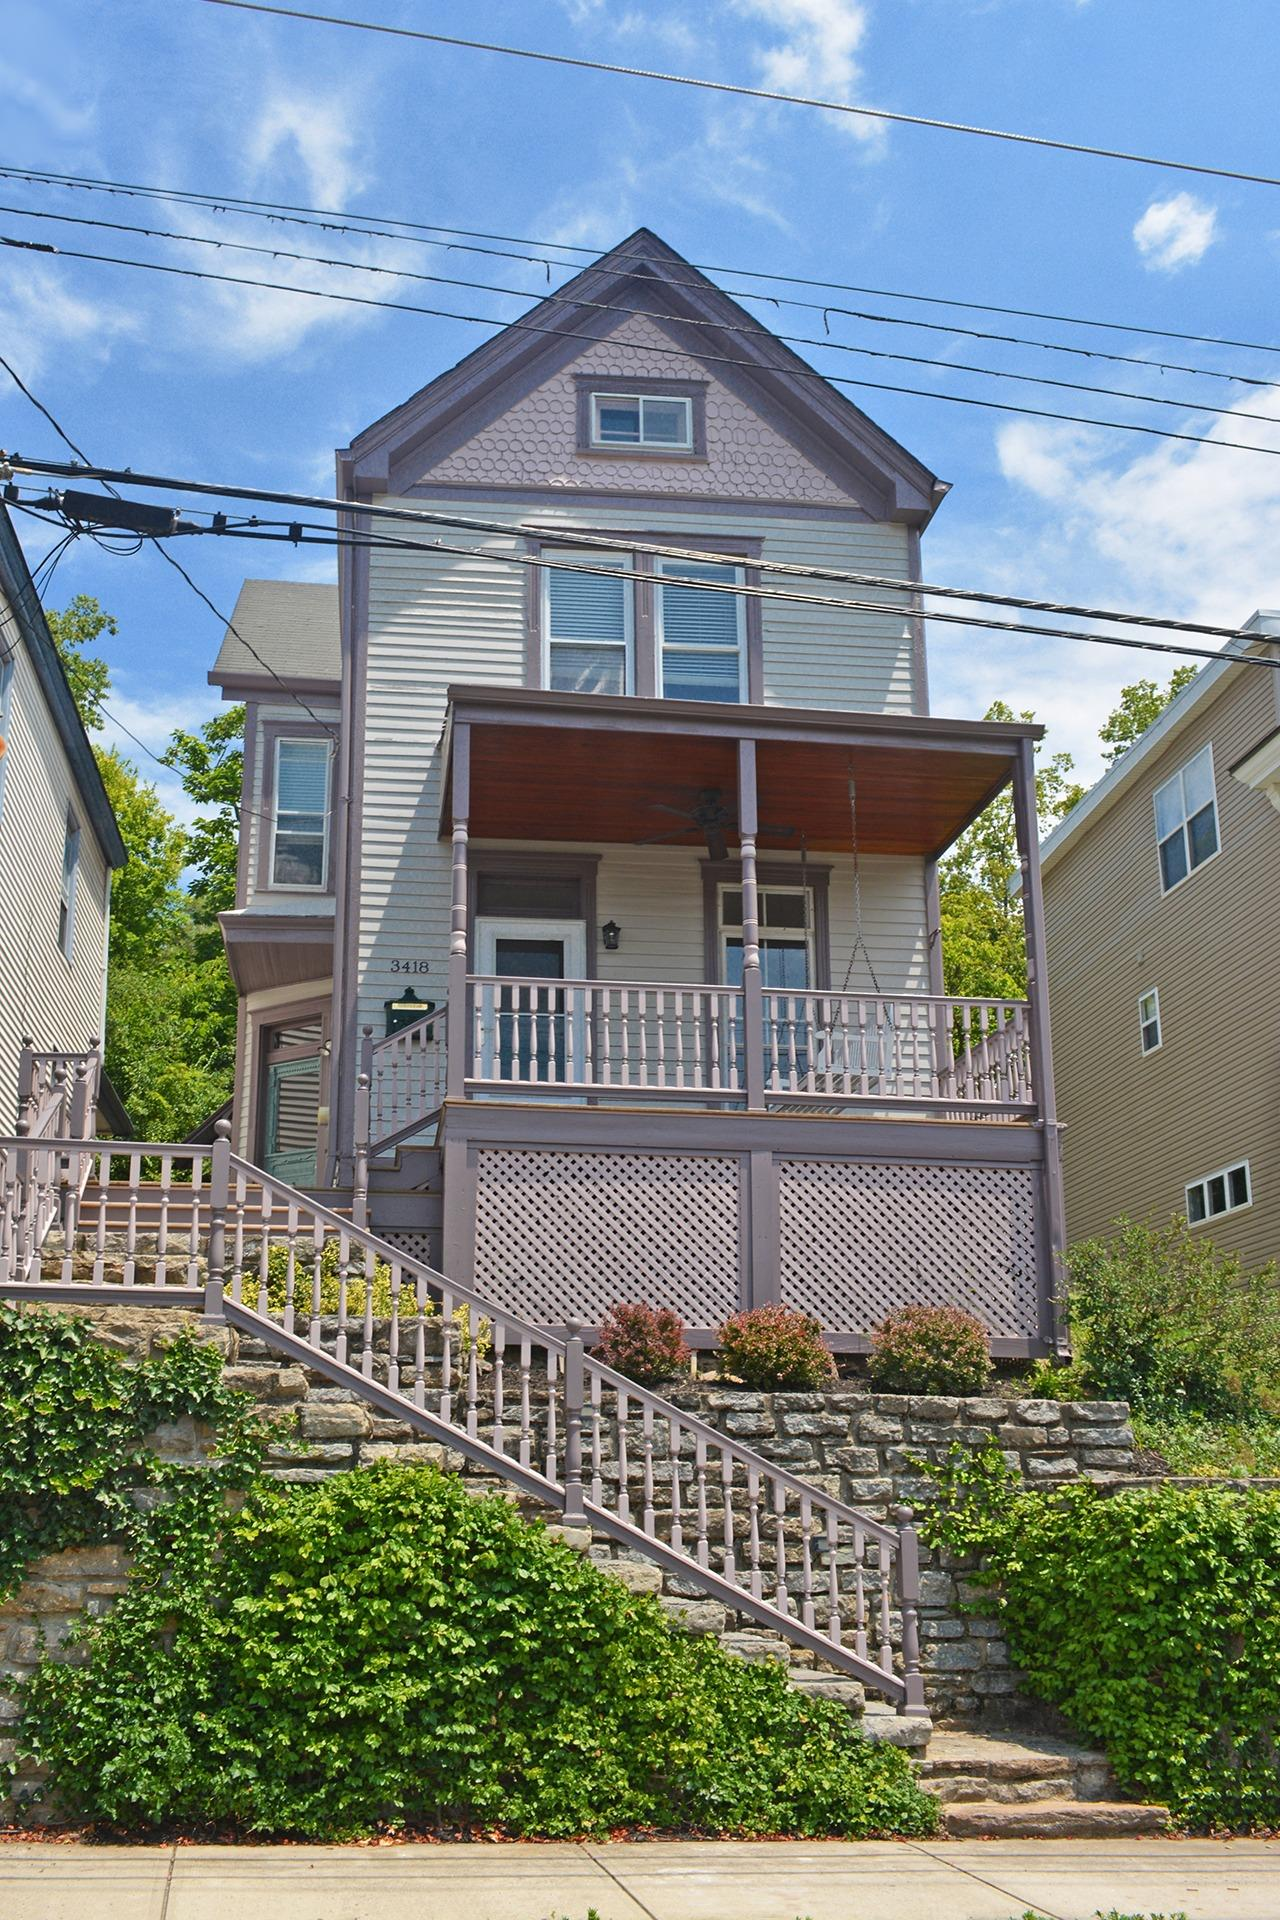 This 1883 Victorian is loaded with charm and updated for modern convenience.  Beautiful floors and moldings, high ceilings, decorative fireplaces.  Newer kitchen and baths, furnace and AC, hot water. Convenient to downtown, walk to restaurants and shops in heart of CT.